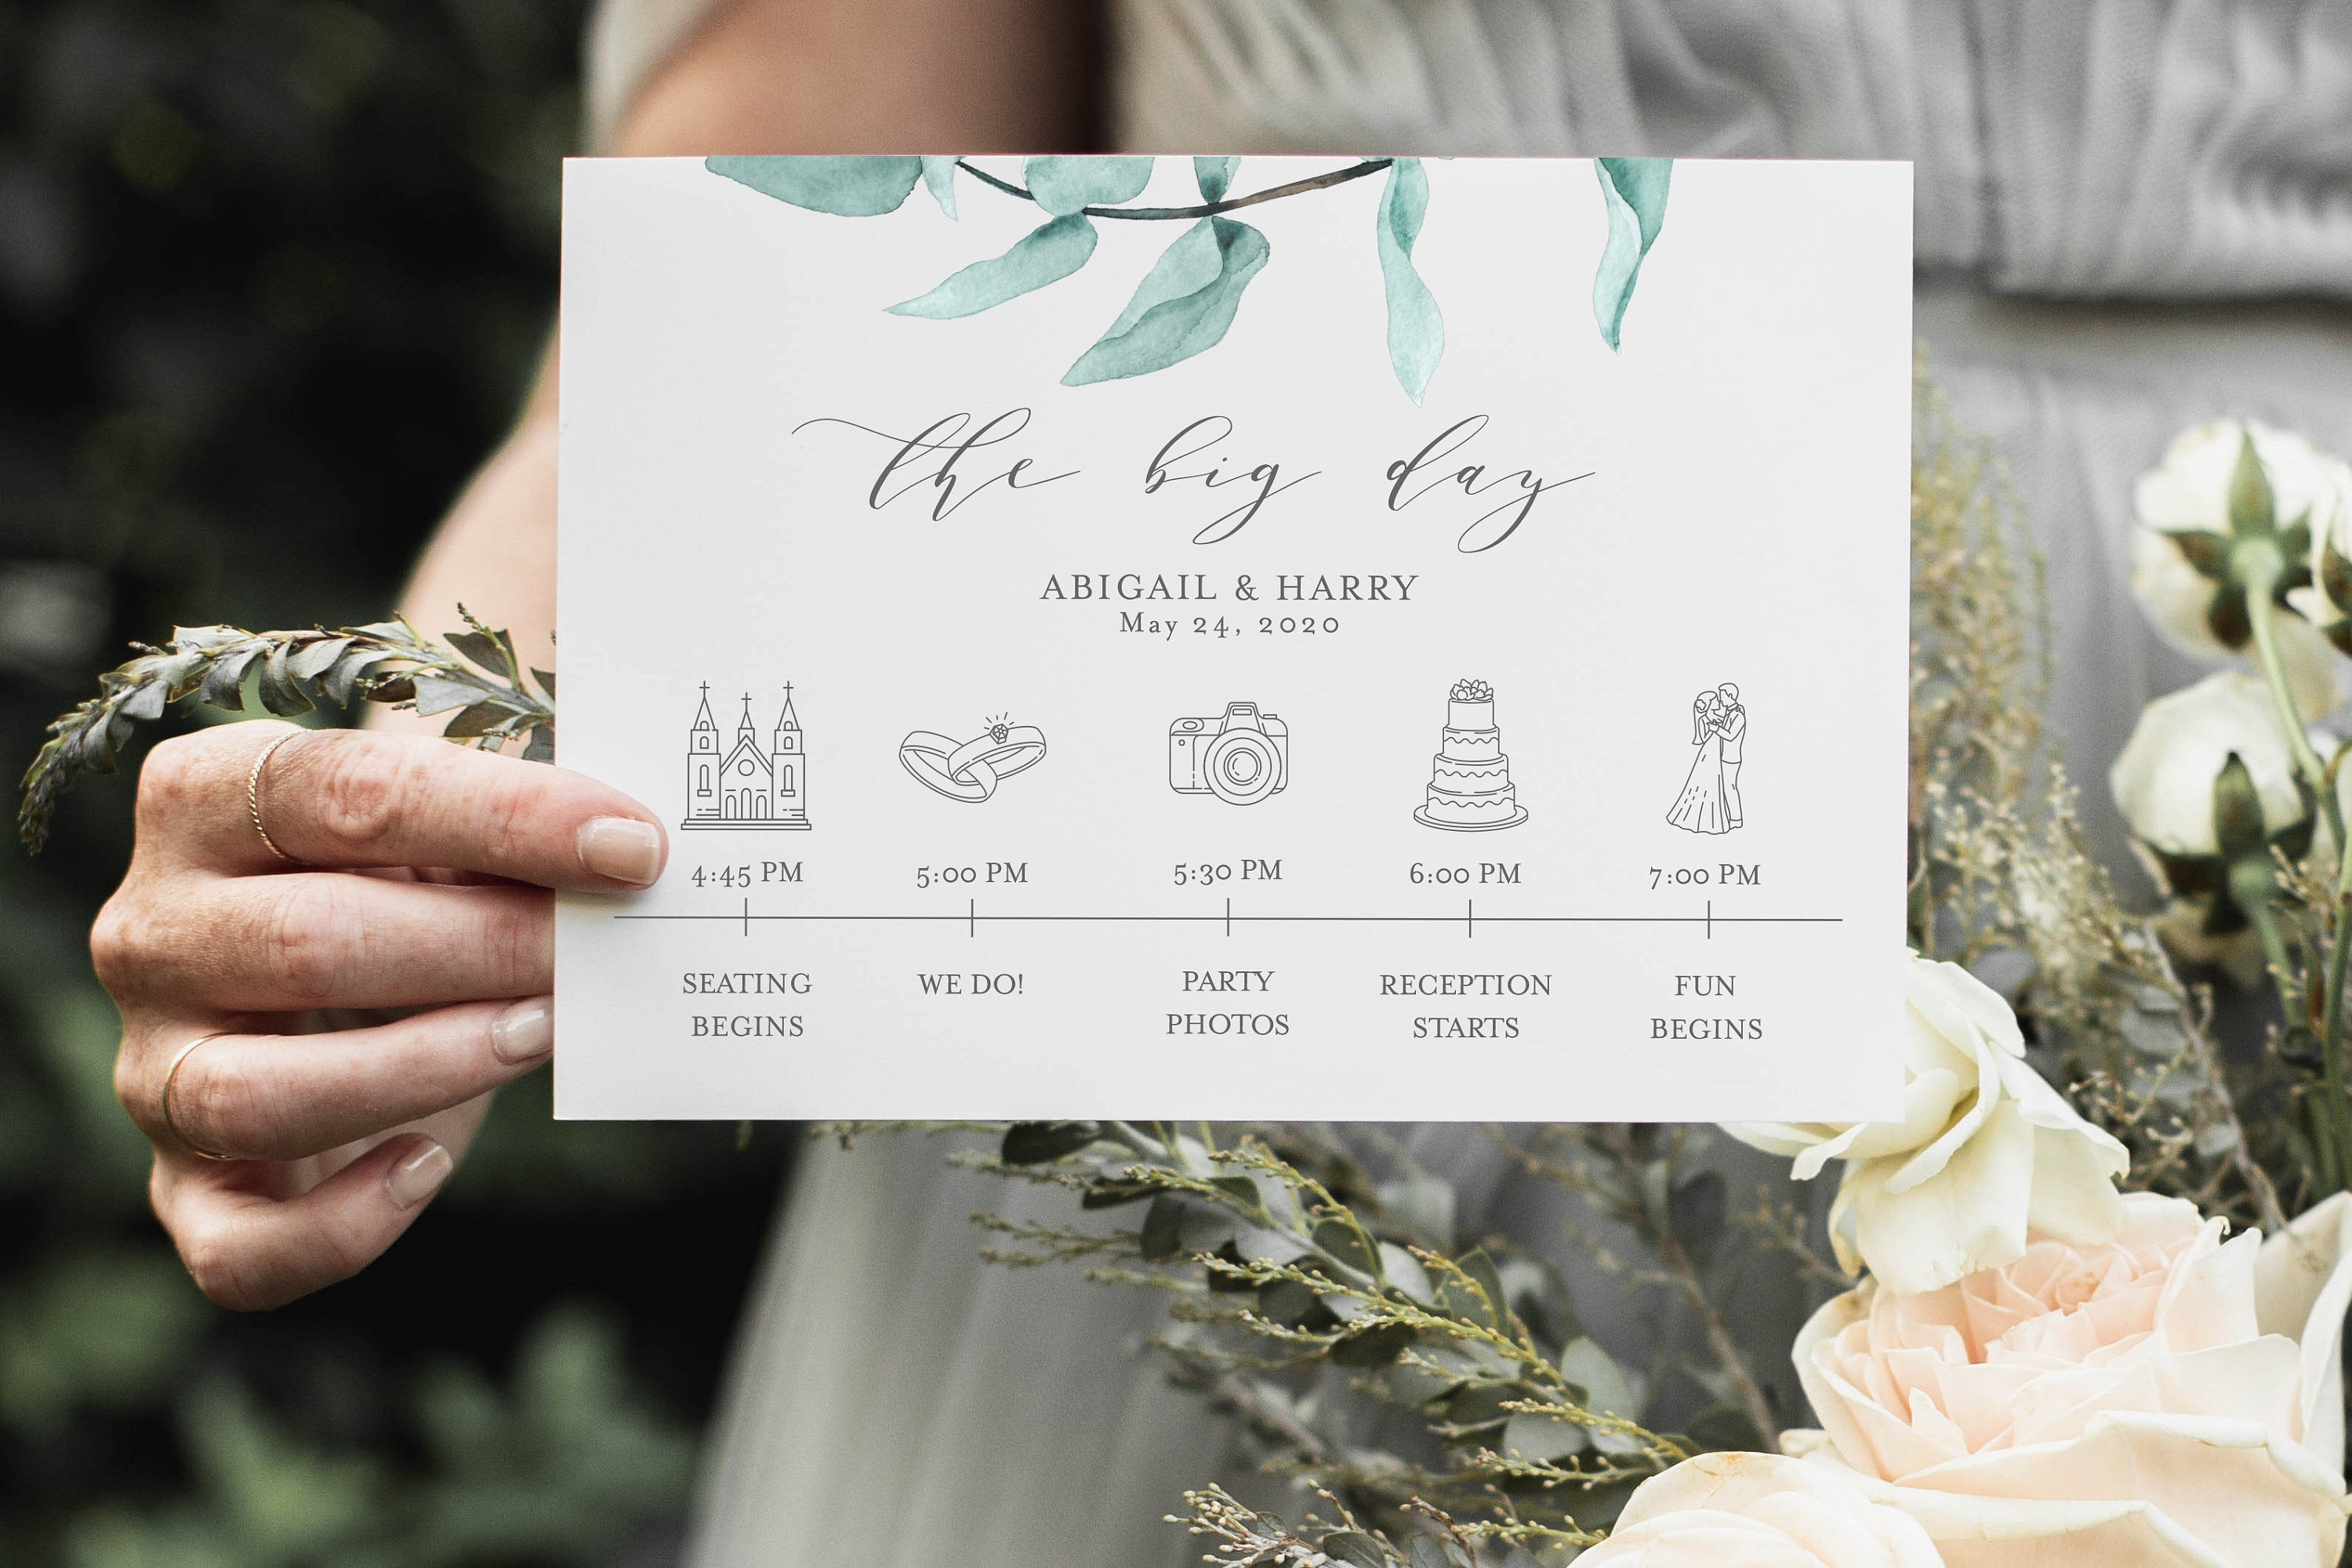 Printable Wedding Itinerary Template Card Timeline Welcome 100% editable Templett Greenery Dusty Blue - Abi